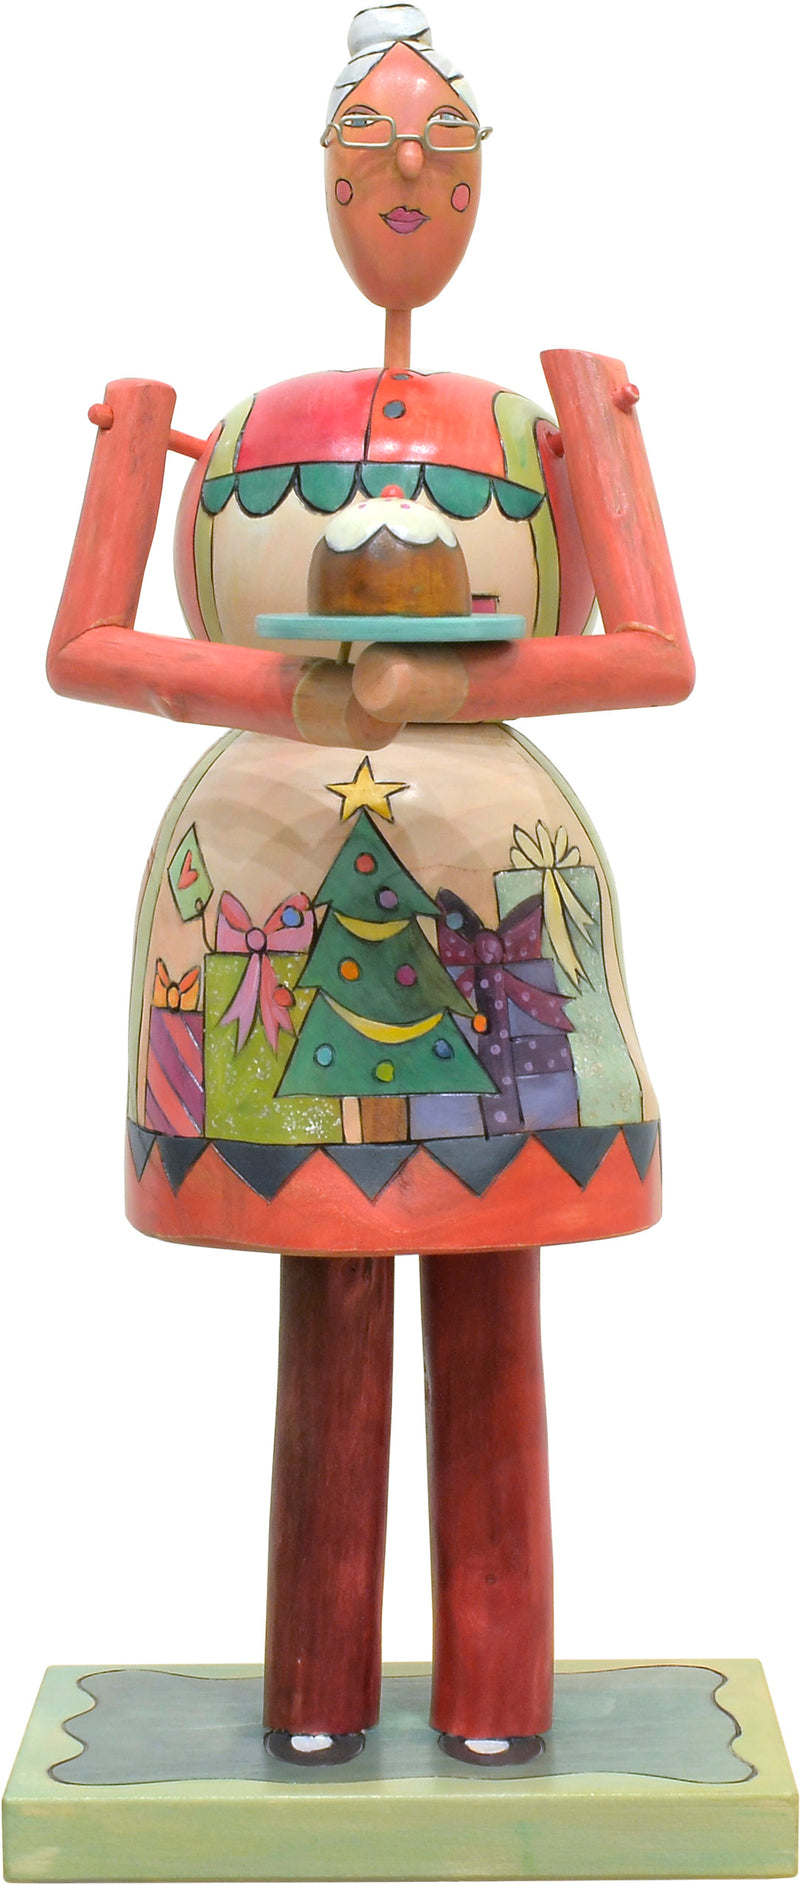 Mrs. Claus Sculpture –  Red Mrs. Claus with a Christmas gift apron